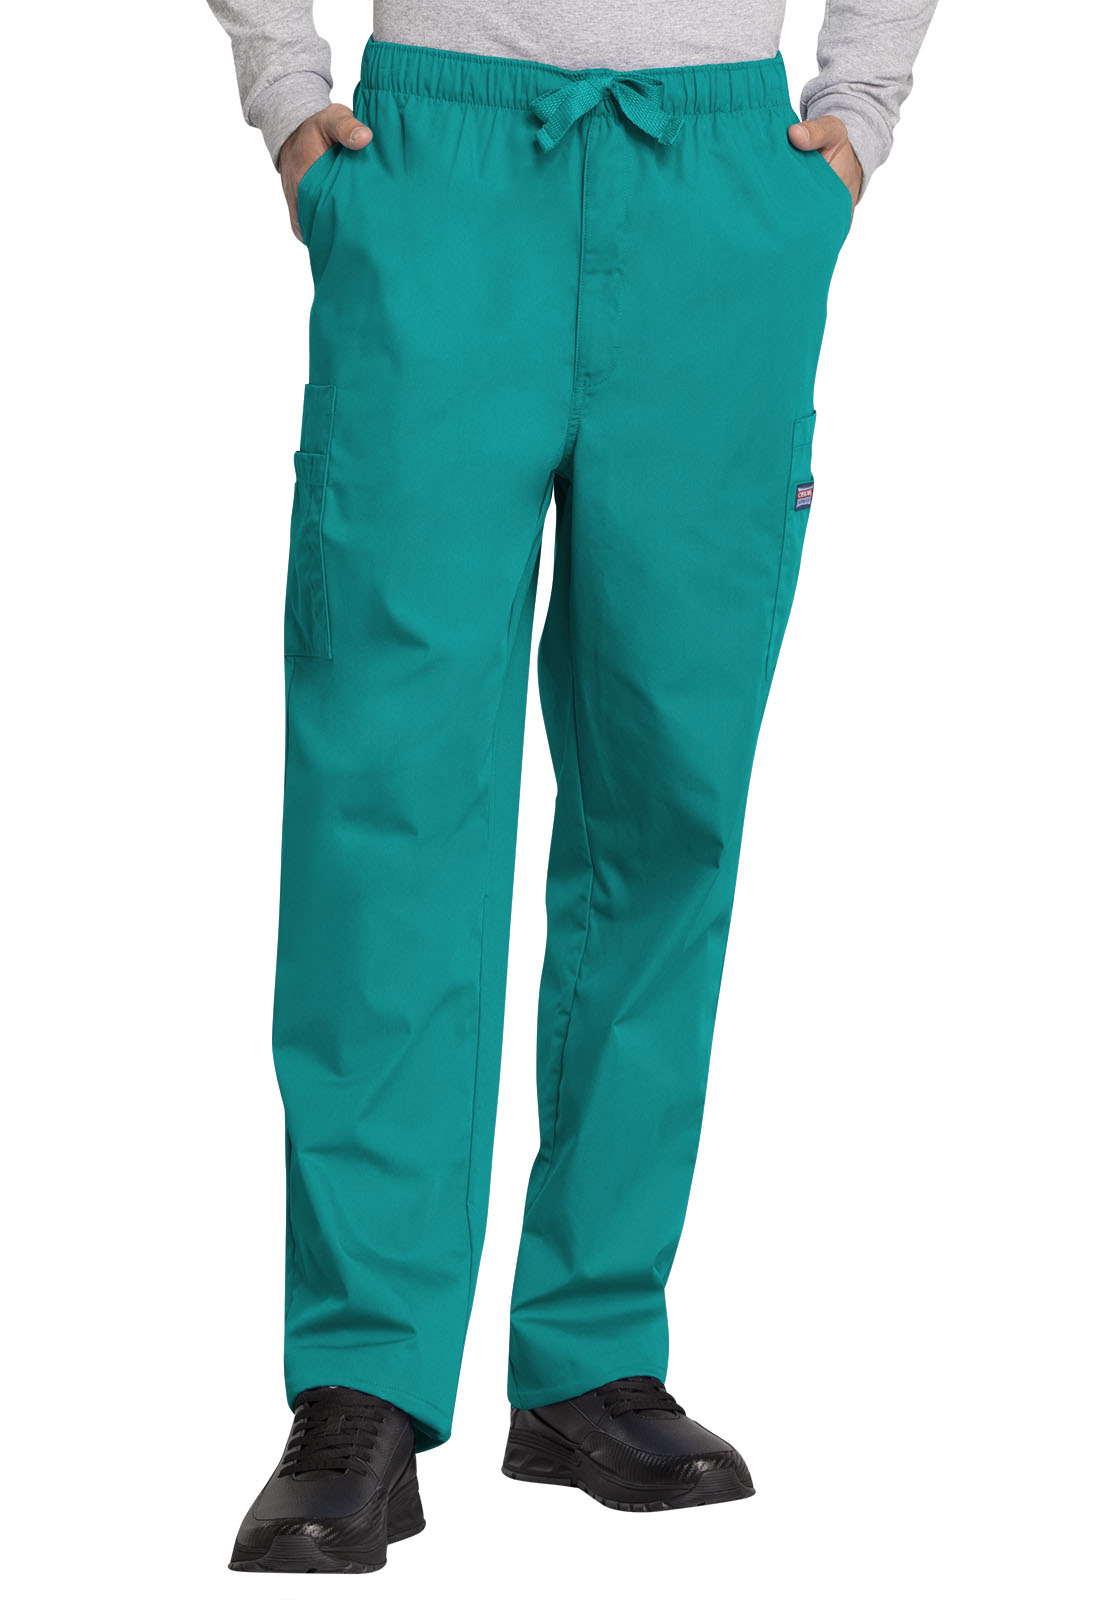 0a1dc5b7ce6 WW Originals Men's Drawstring Cargo Pant in Teal Blue 4000-TLBW from ...